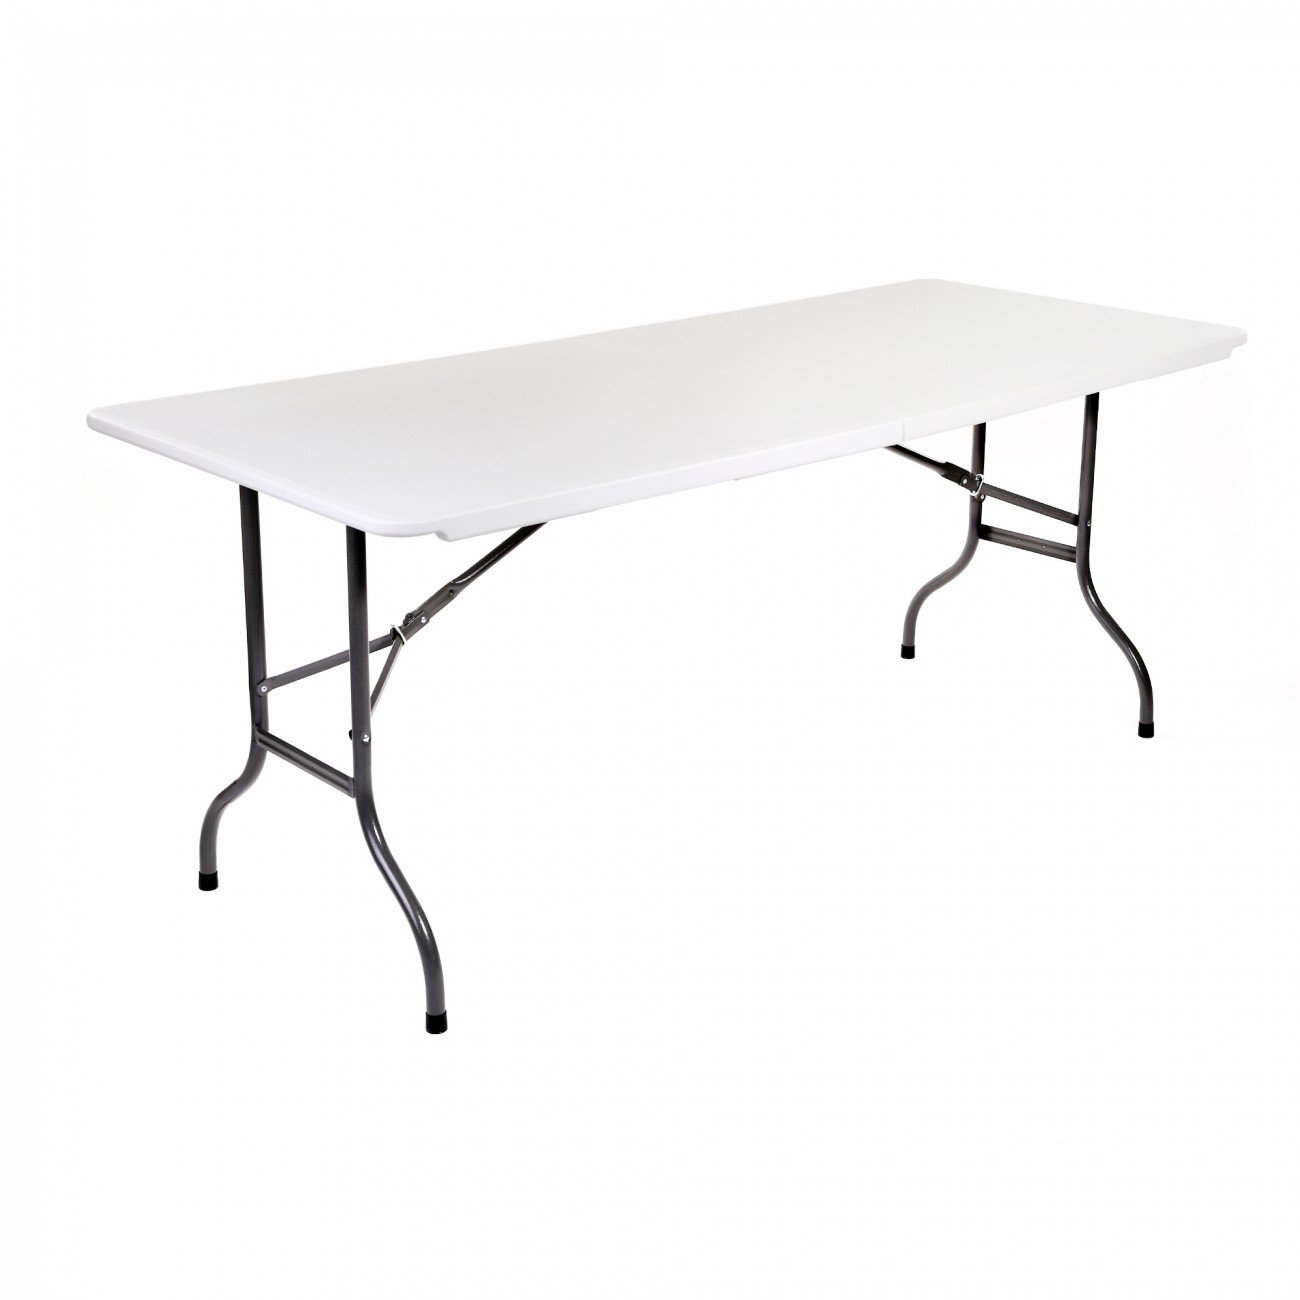 Acheter table pliante,table pliable,table rabattable,table ...